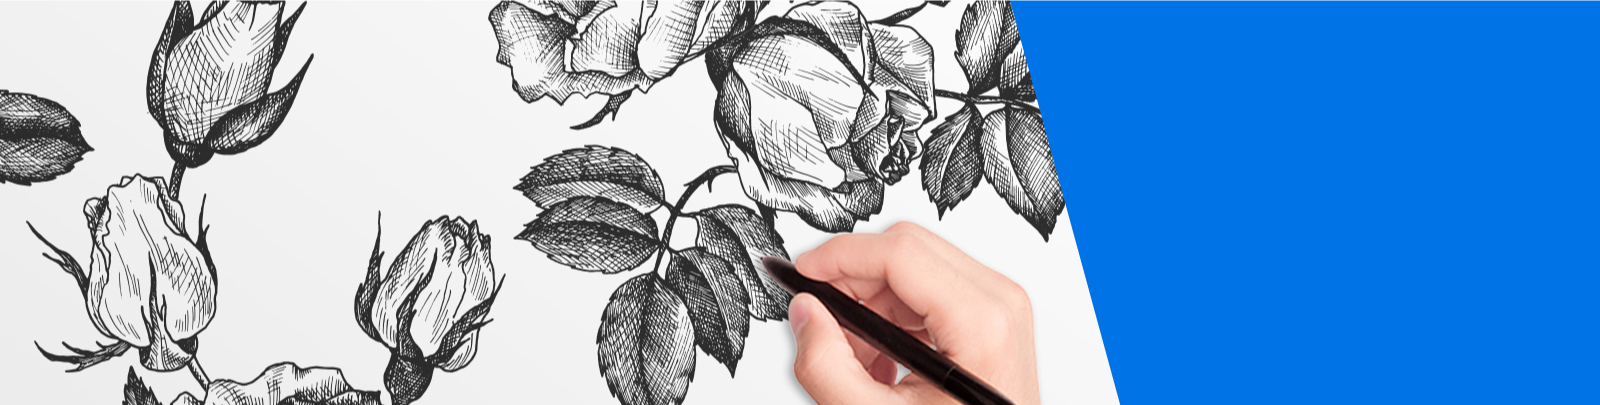 A hand drawing a pen and ink style image of flowers.